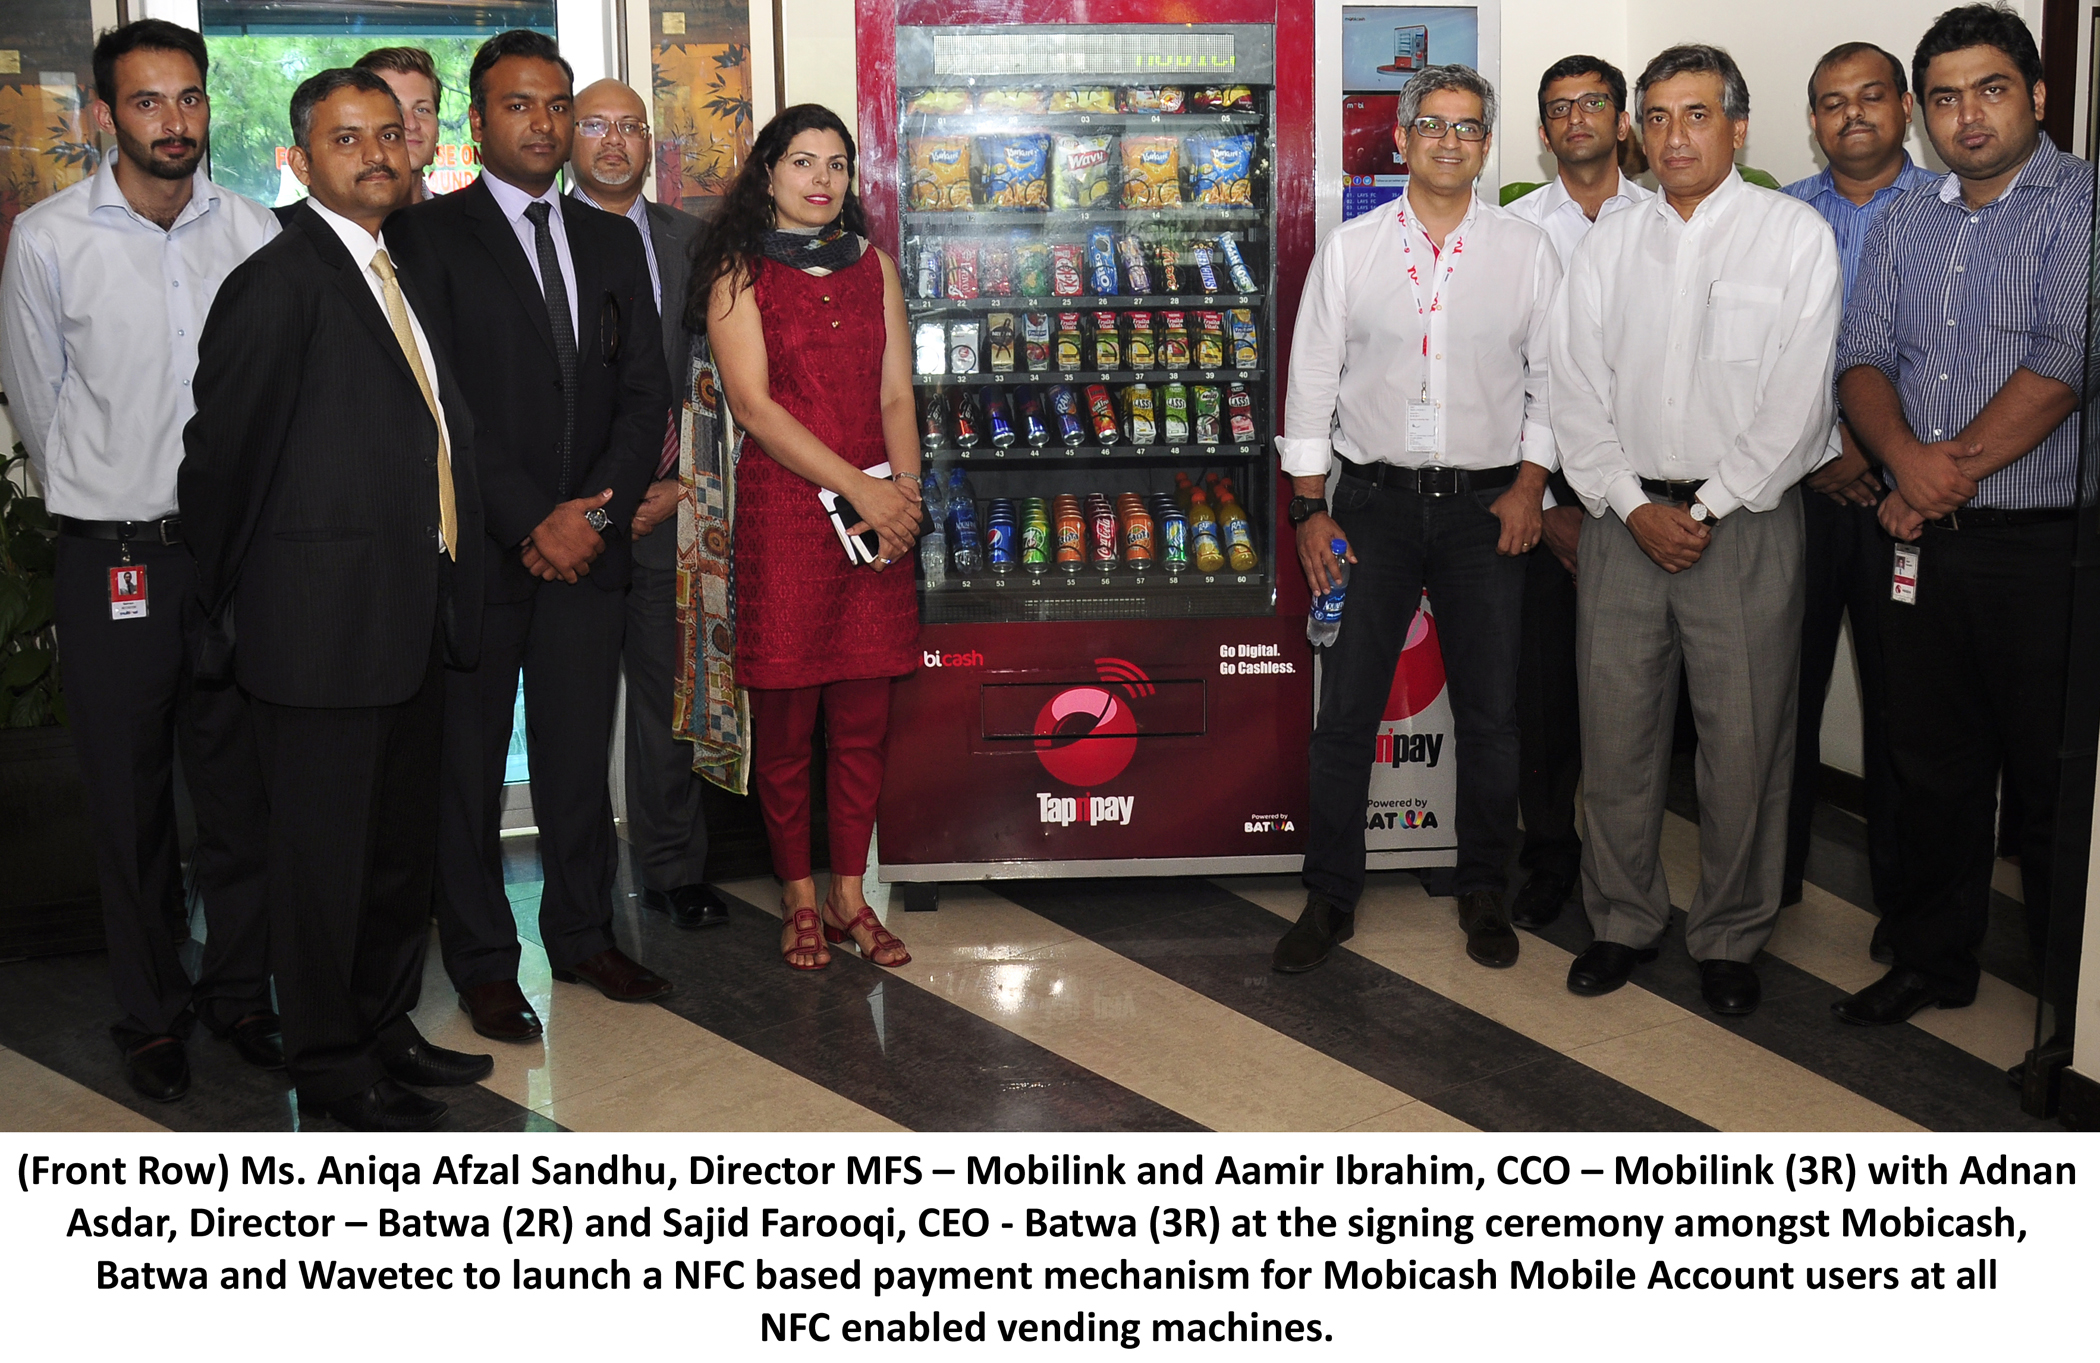 Mobicash Becomes First Mobile Financial Services Provider to Offer NFC Payment Solutions in Pakistan